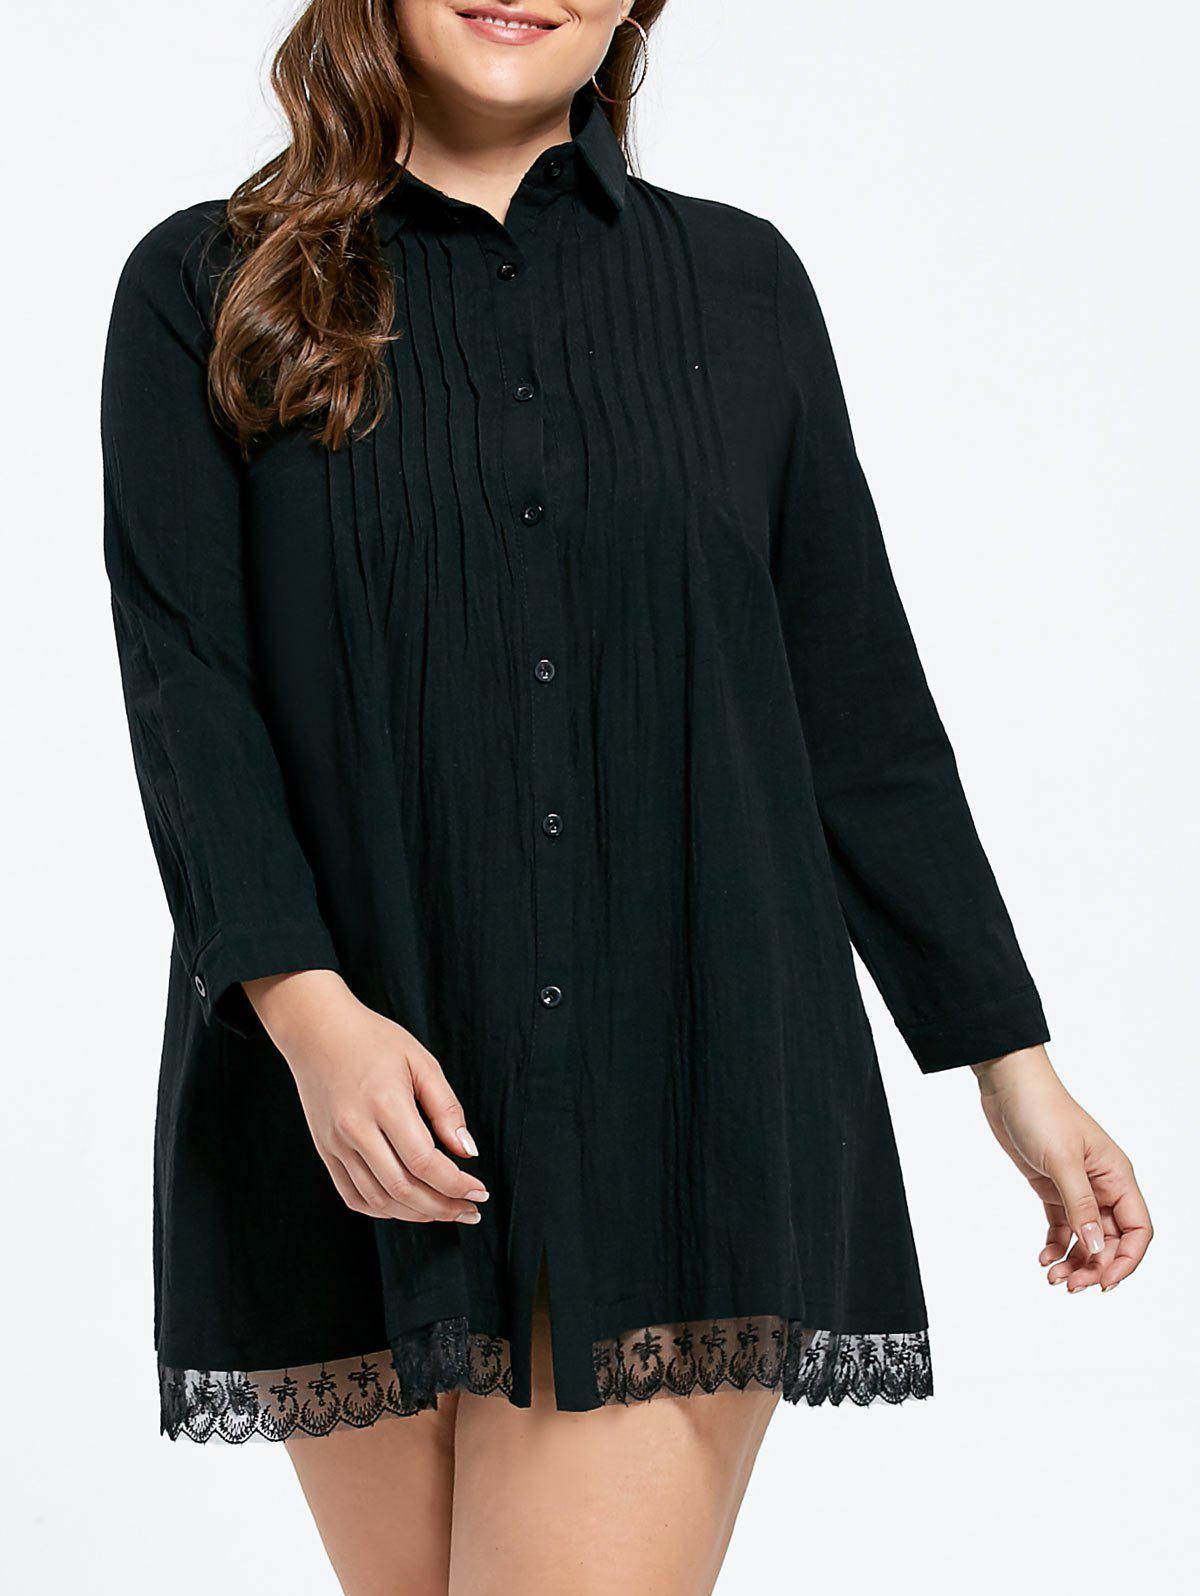 2018 Lace Trim Pleated Plus Size Babydoll Shirt Dress In Black 5xl